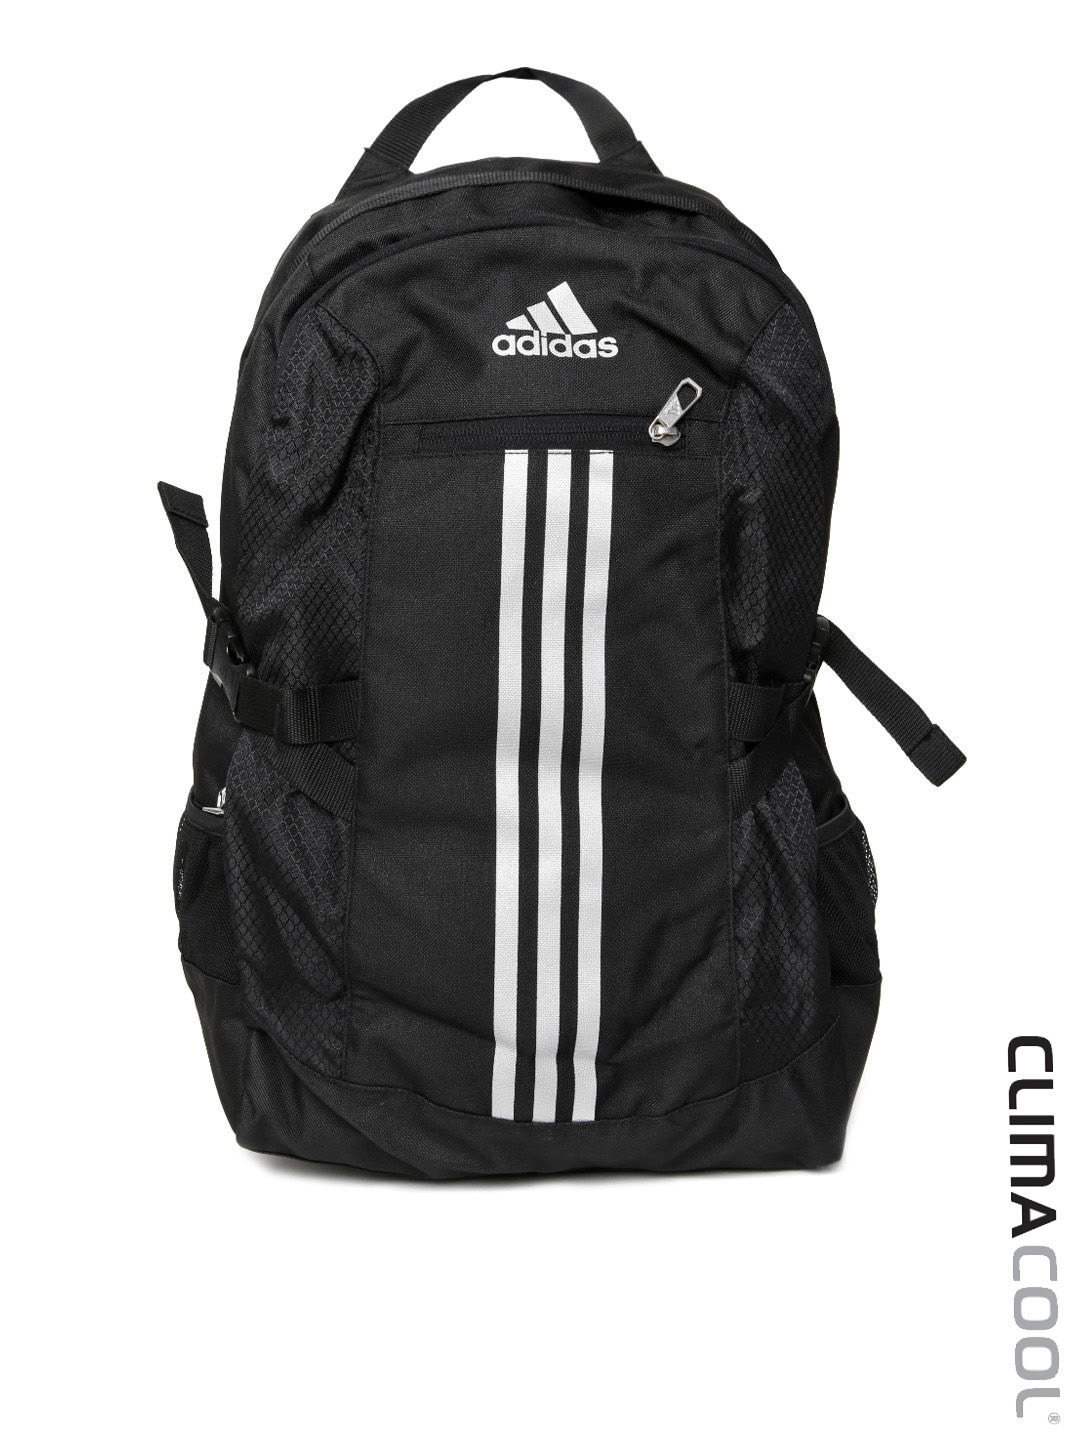 3326a247db Adidas Asics Backpacks Tights - Buy Adidas Asics Backpacks Tights online in  India